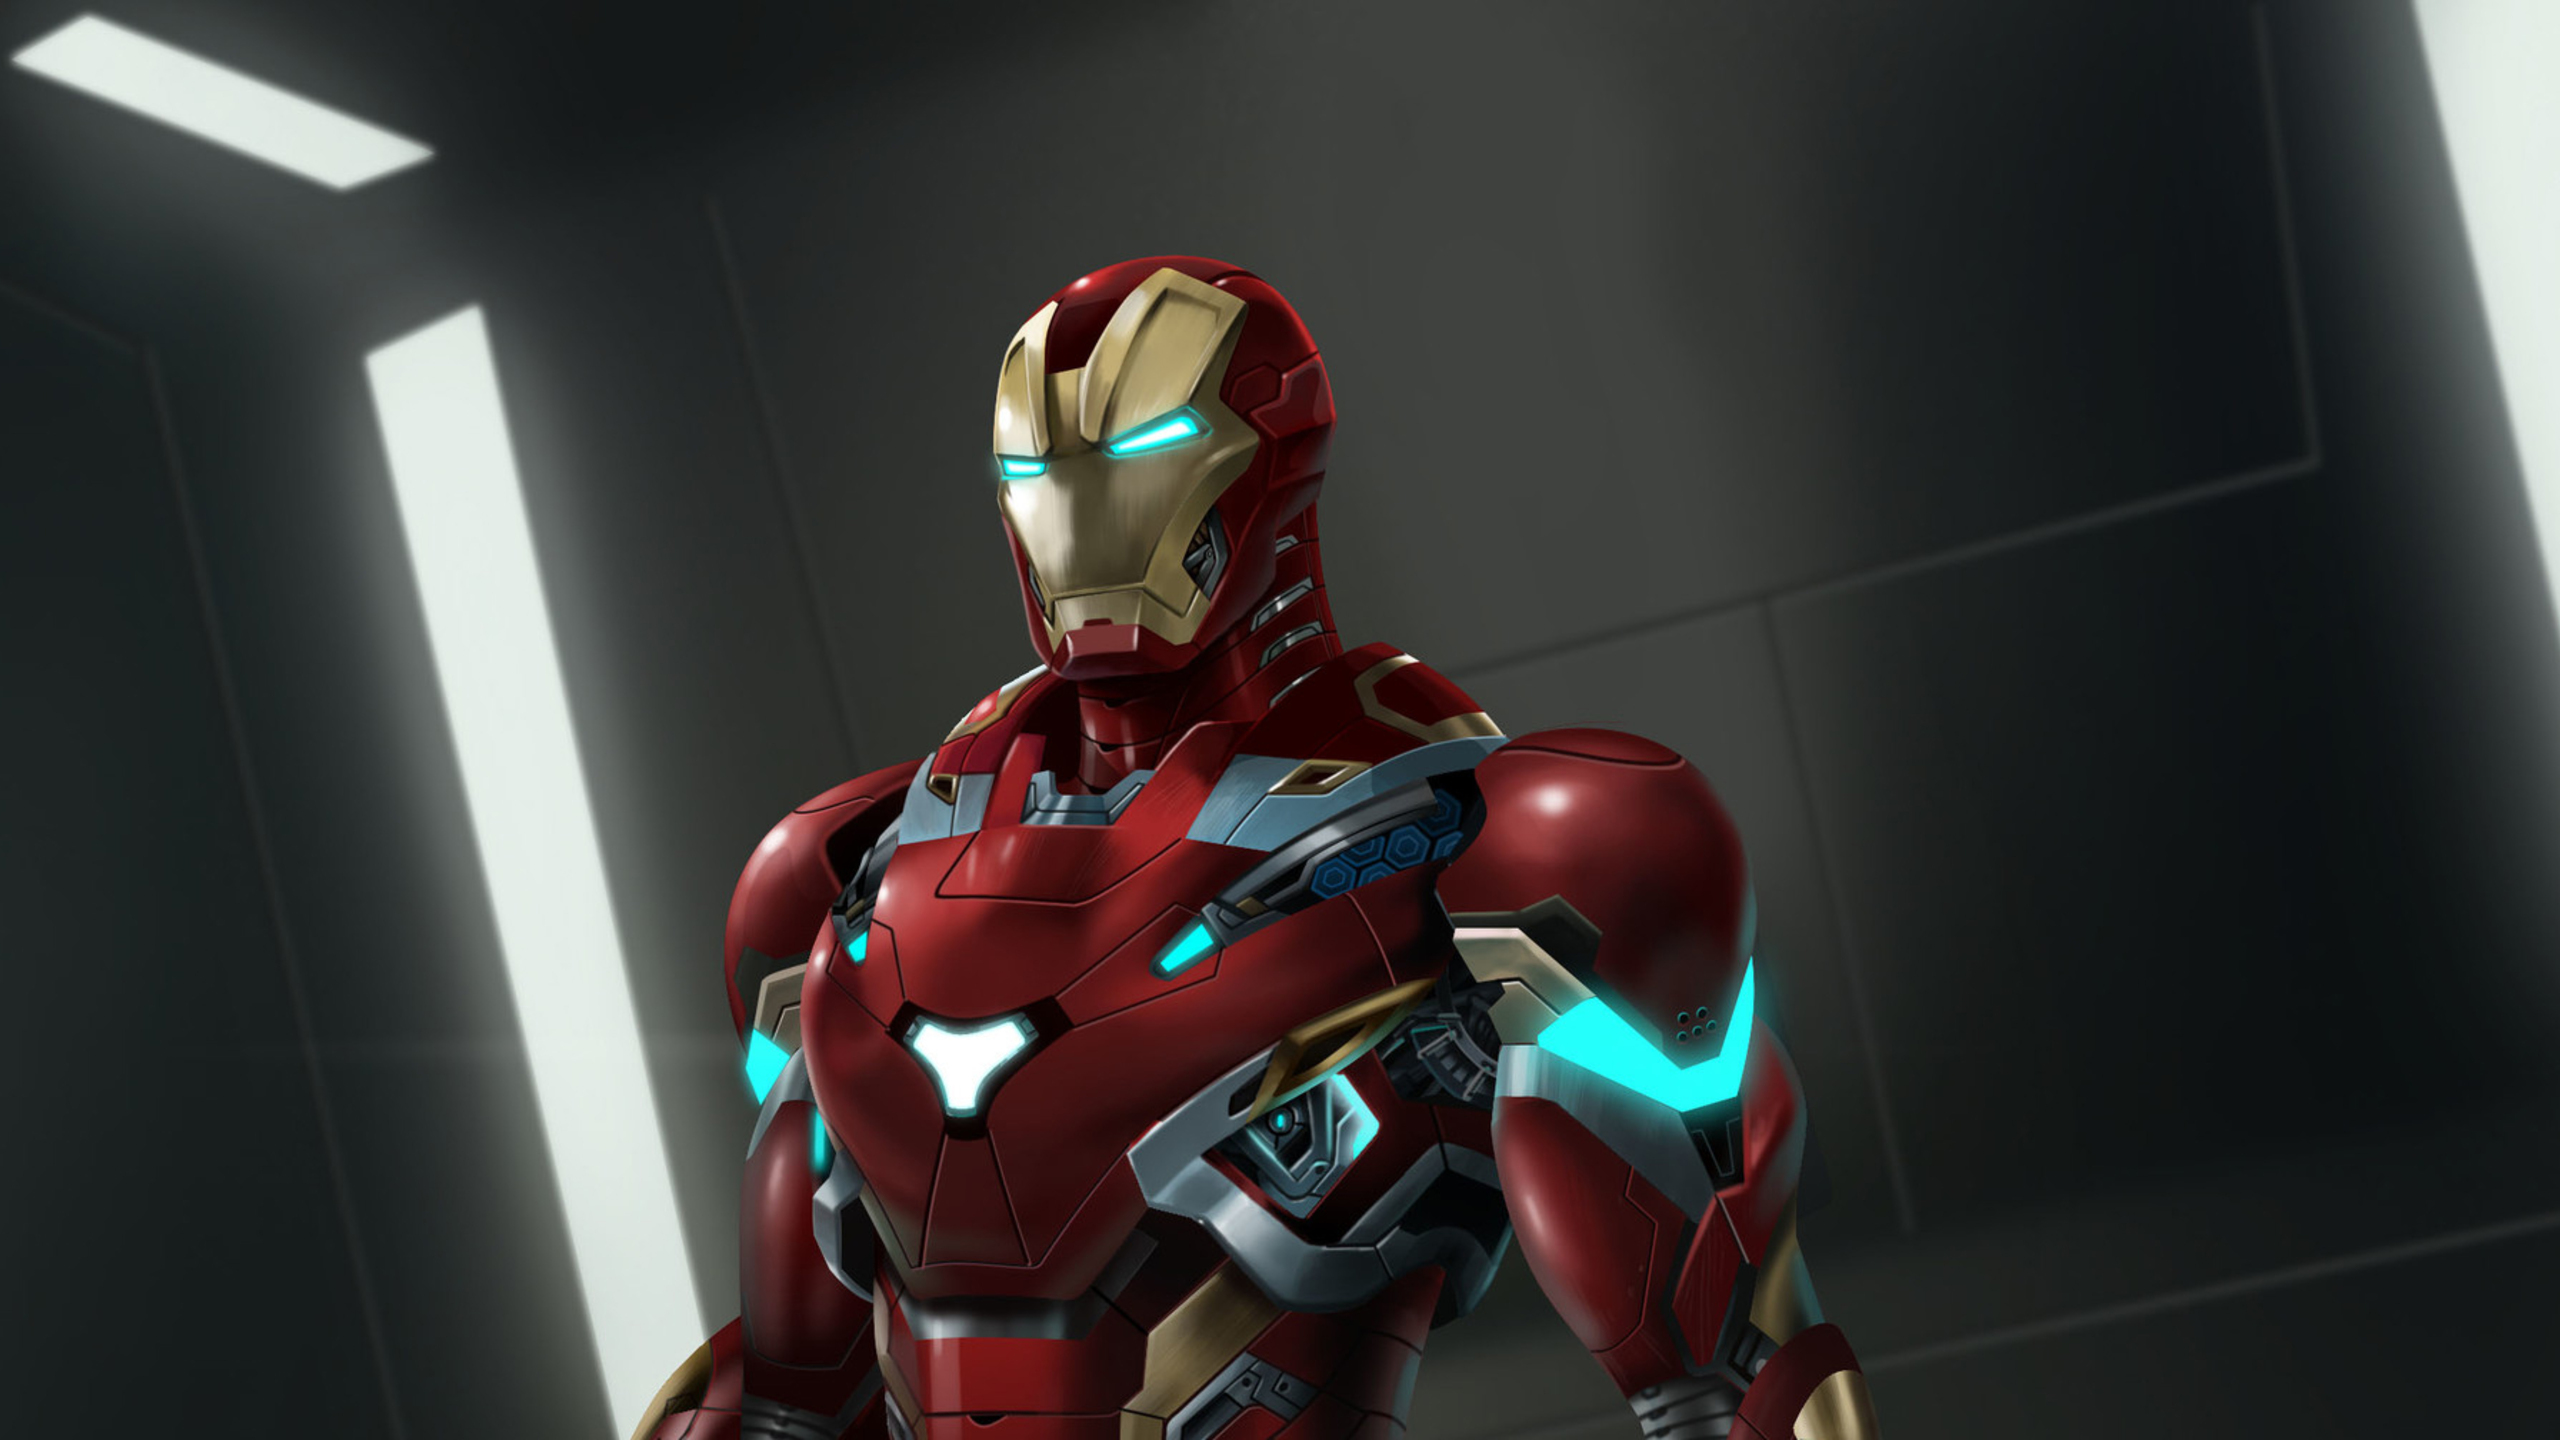 2560x1440 iron man suit artwork 1440p resolution hd 4k wallpapers